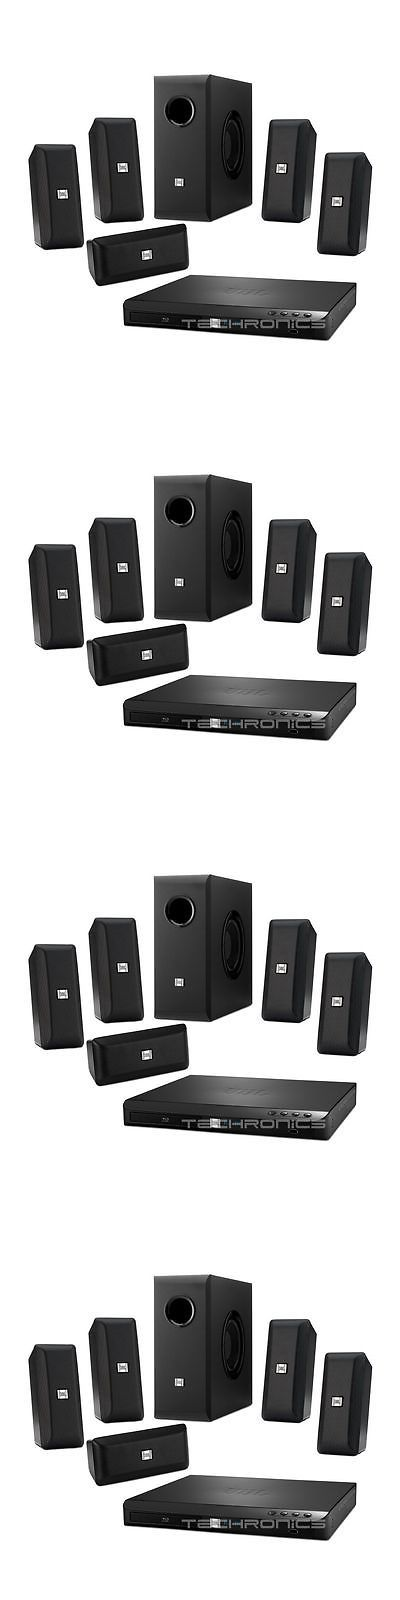 Home Theater Systems: Jbl Bd100 5.1 Channel Home Theater System With 3D Blue Ray Disc Receiver New BUY IT NOW ONLY: $239.99